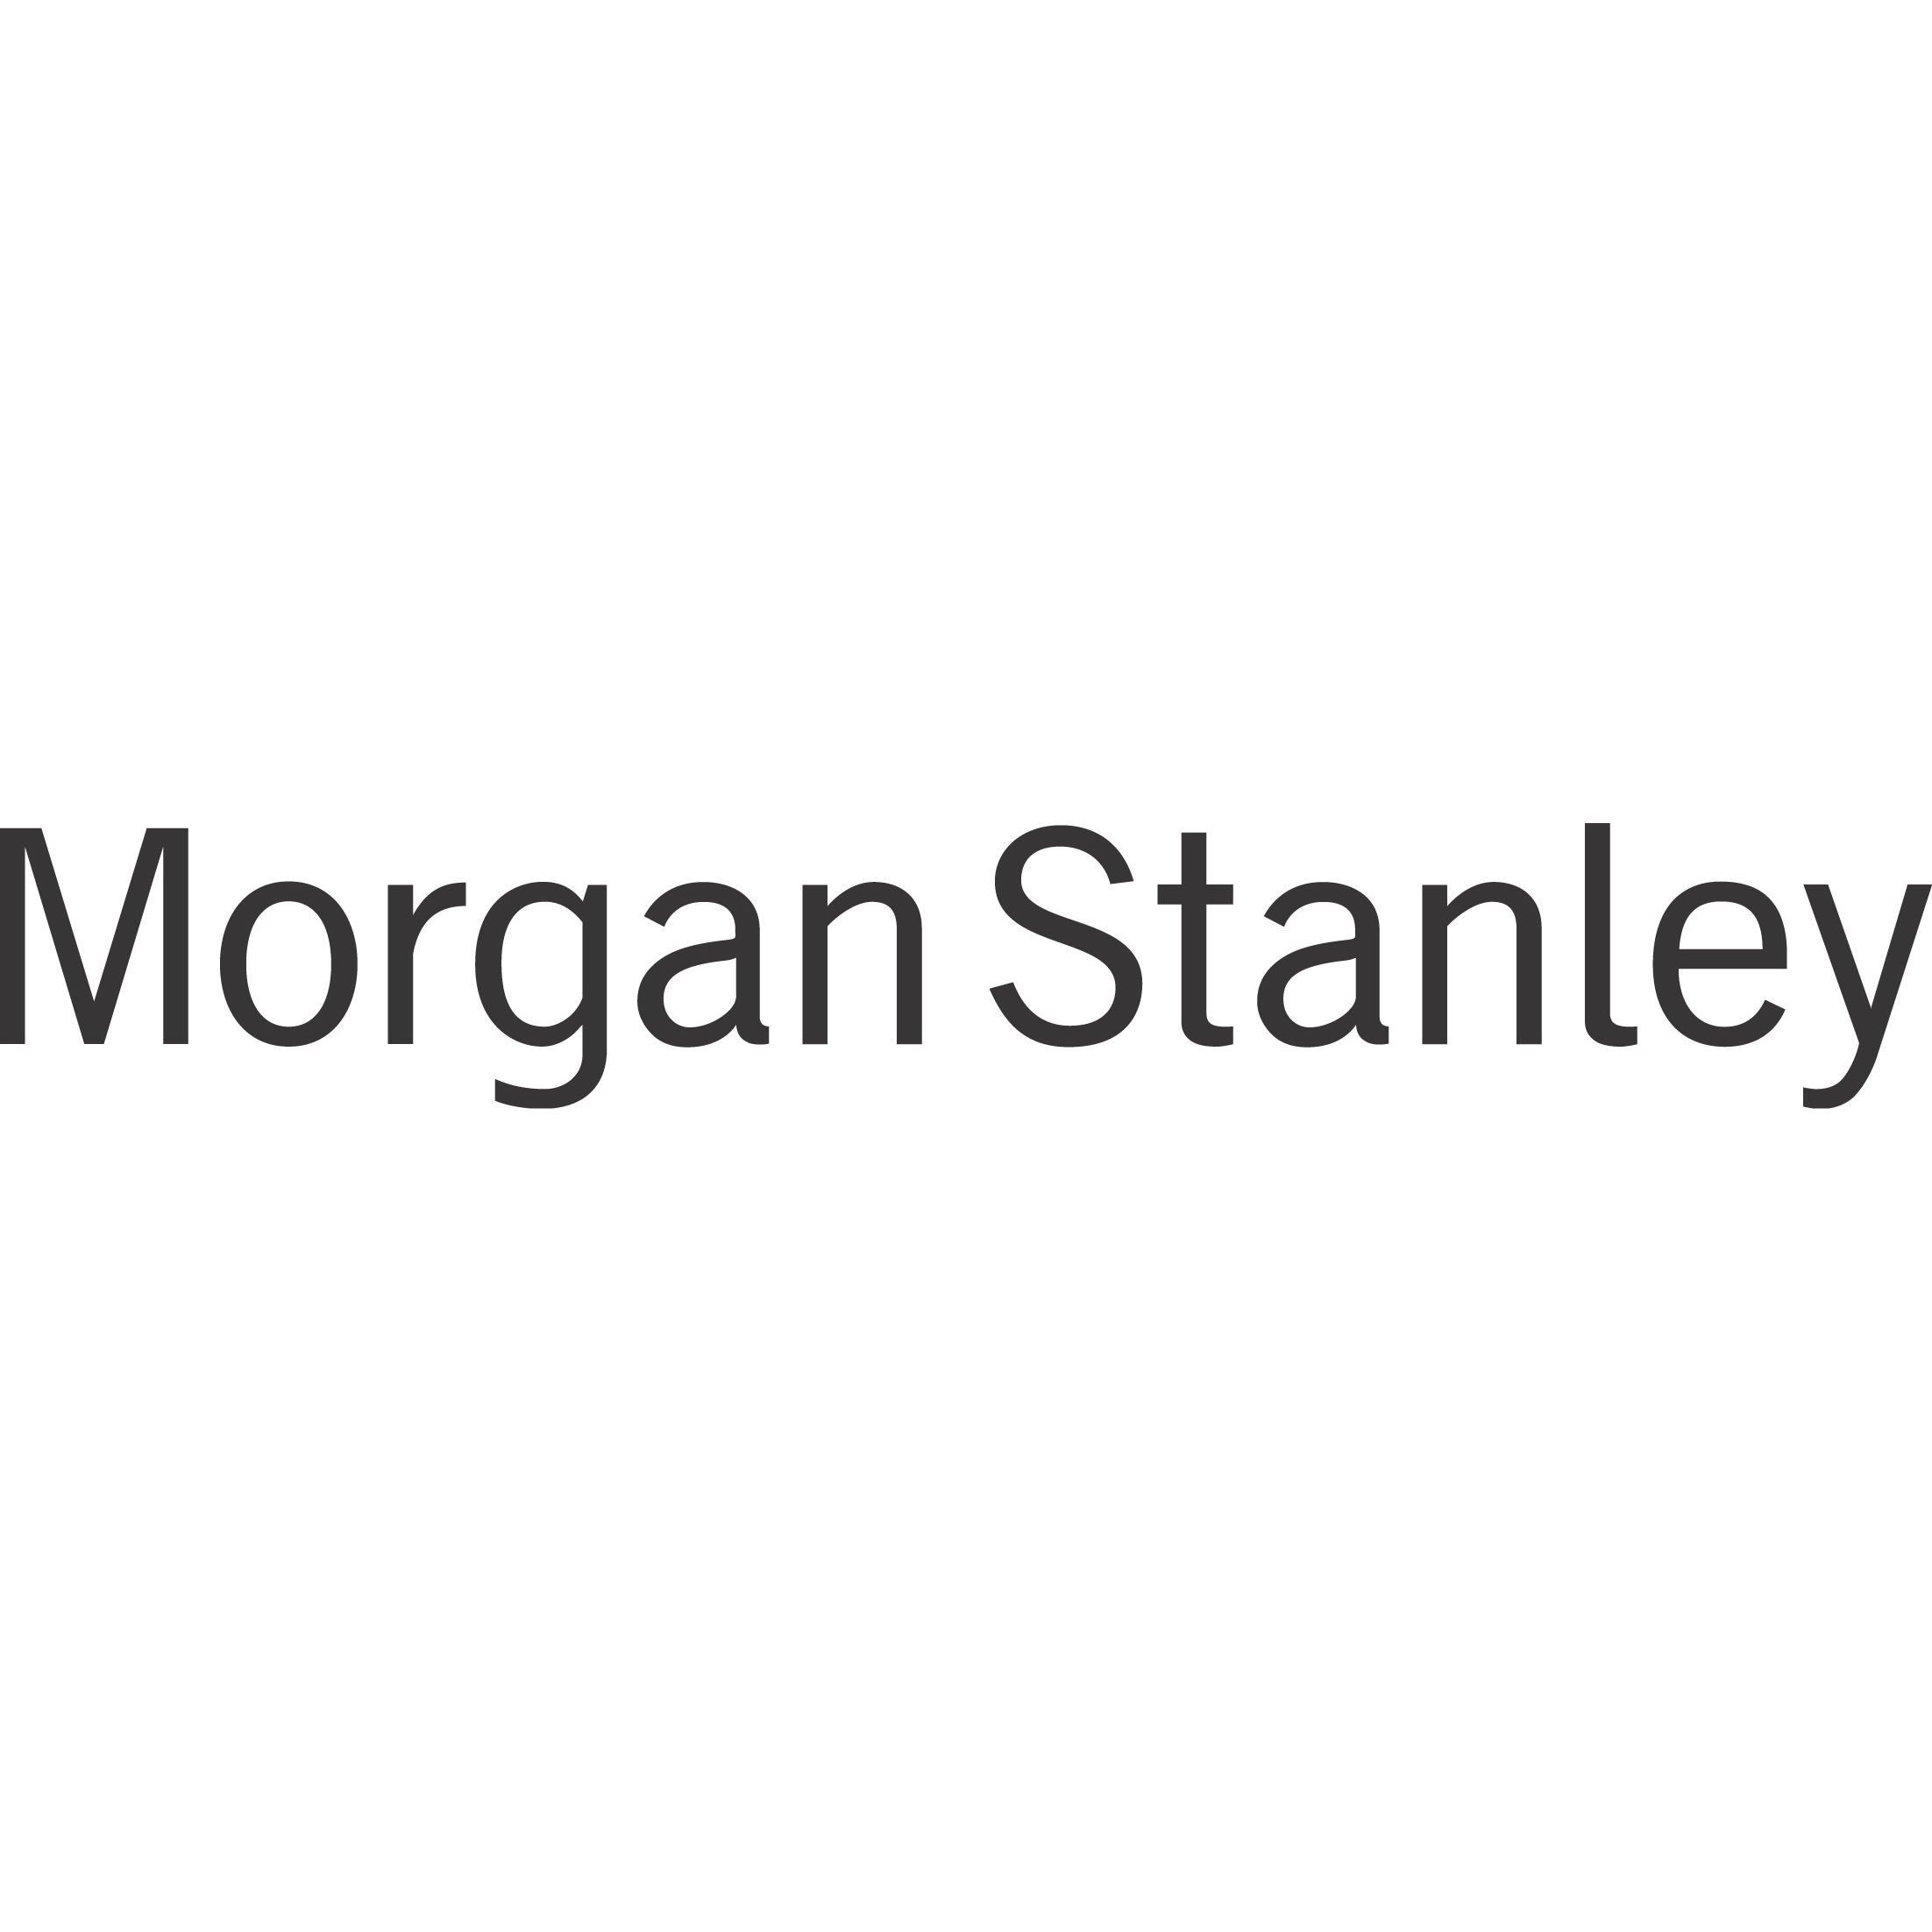 Christopher H Russi - Morgan Stanley | Financial Advisor in Virginia Beach,Virginia